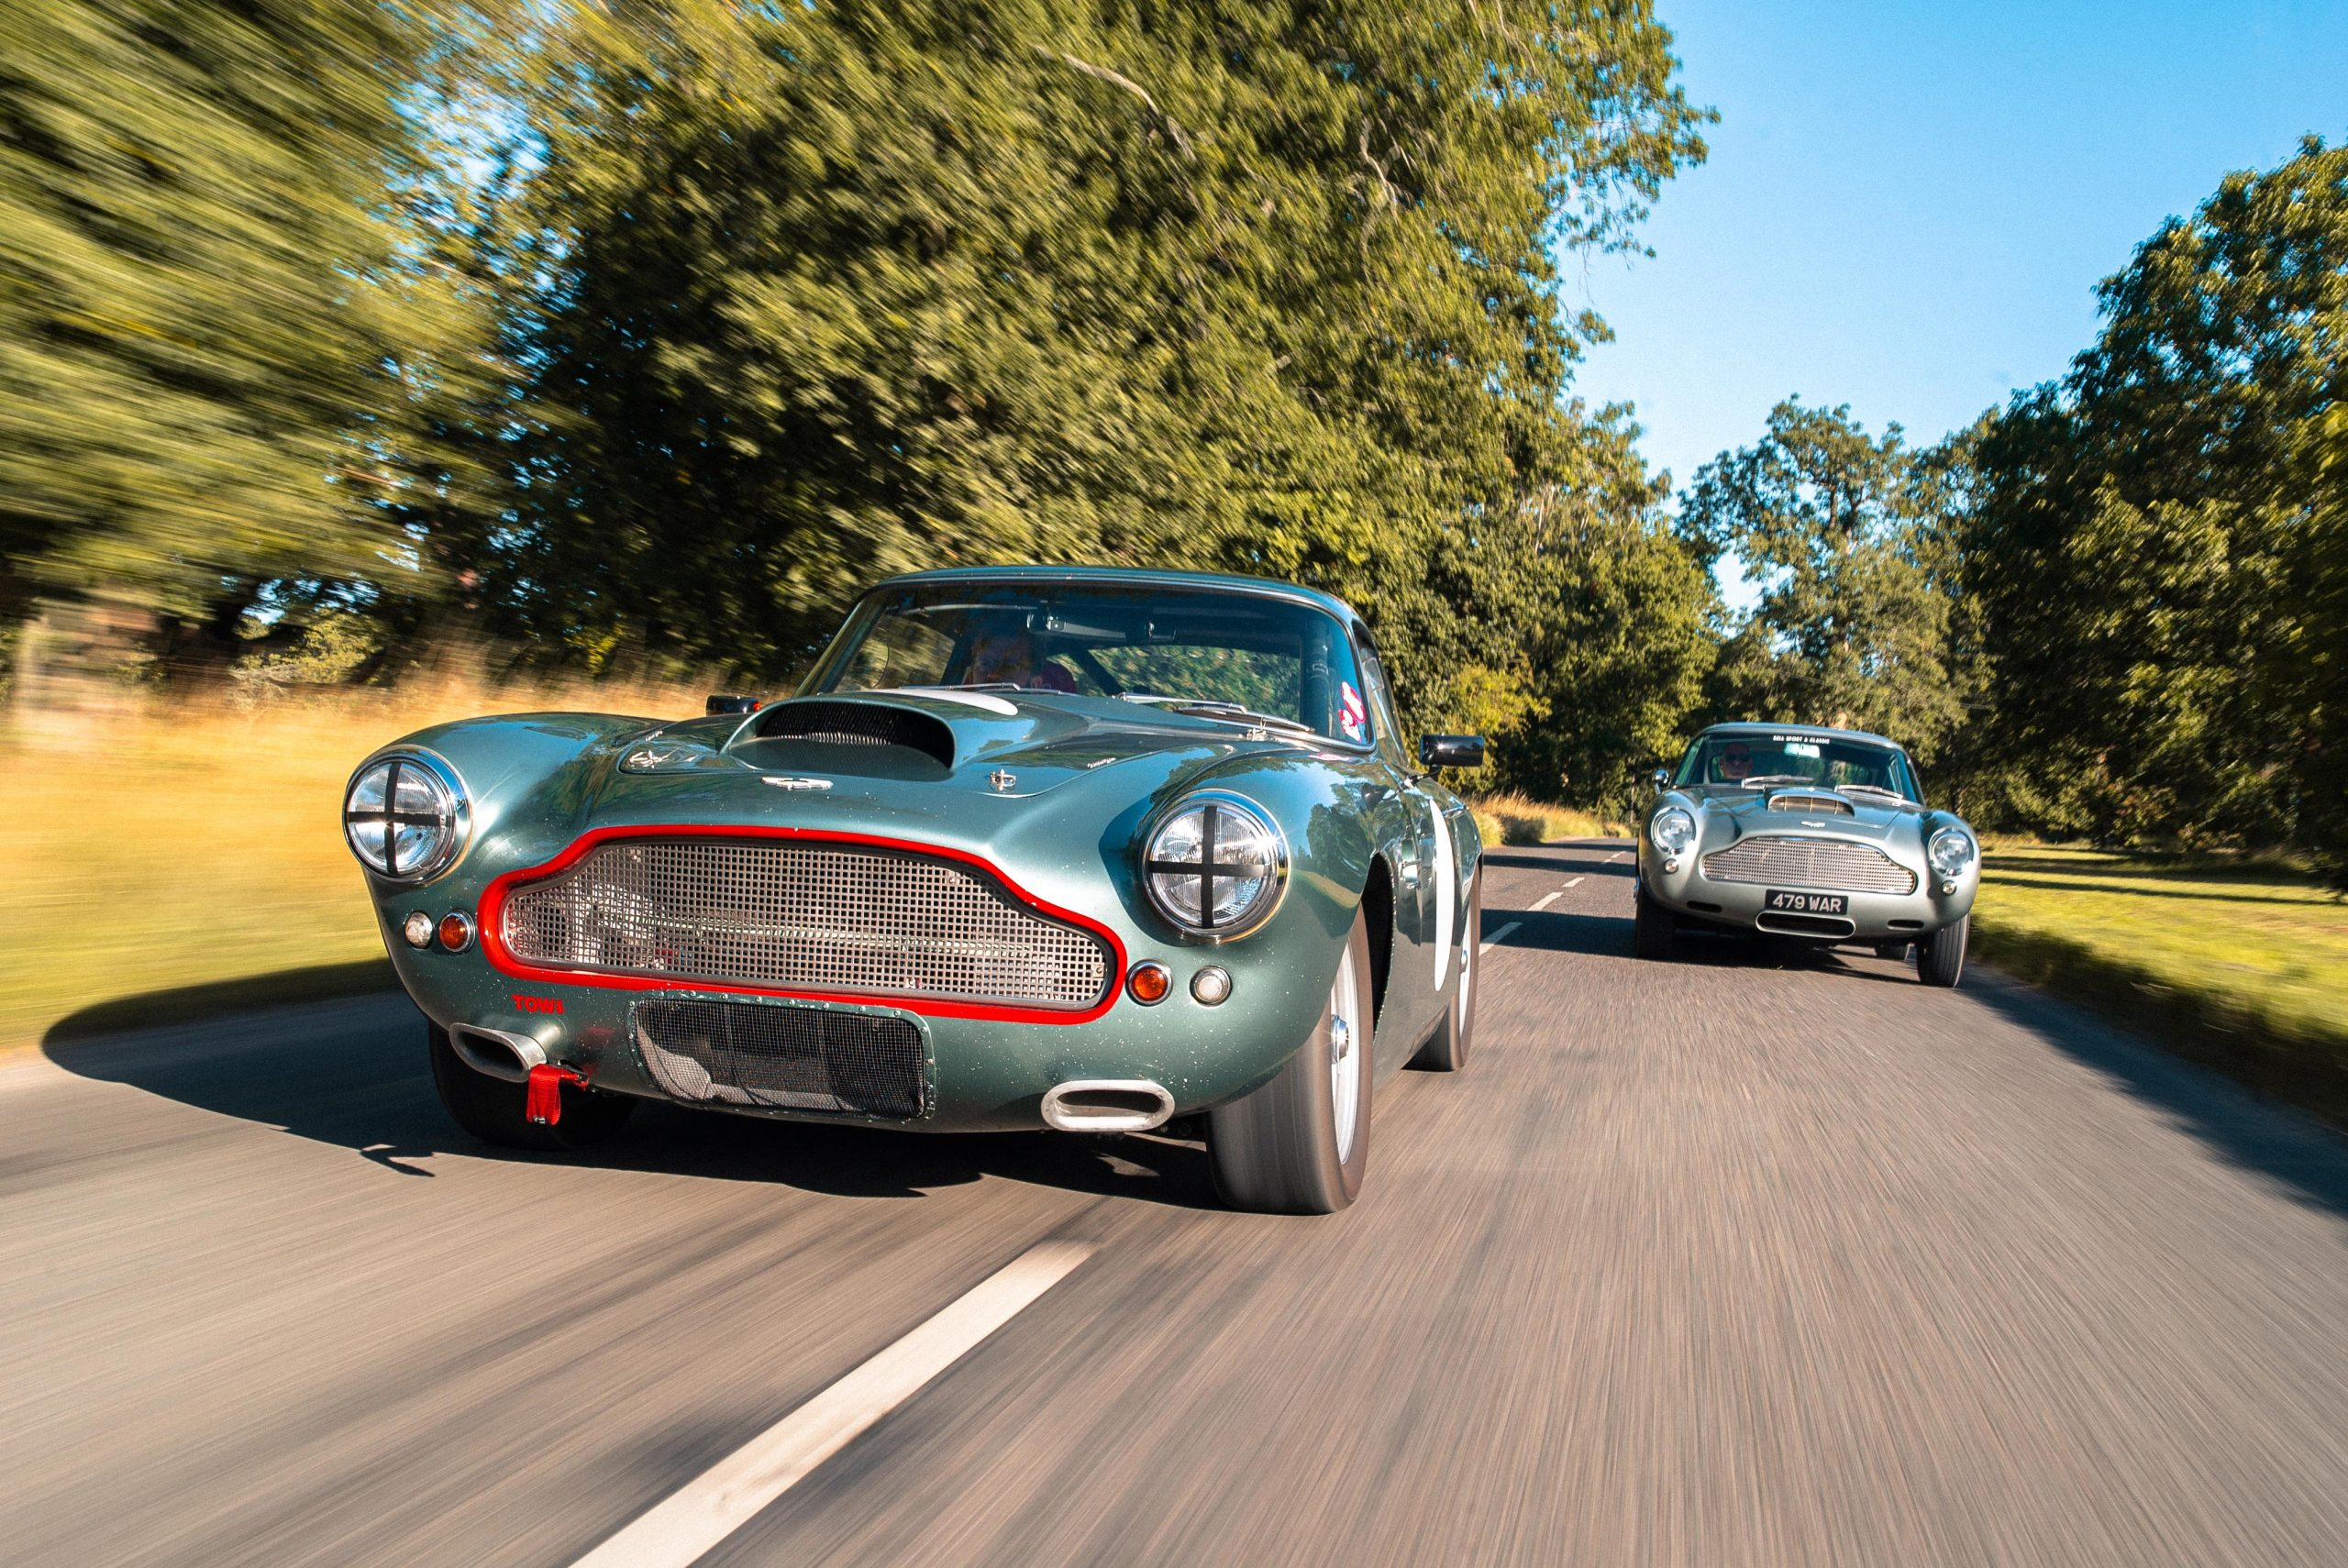 Bell Sport & Classic DB4 racer and road car